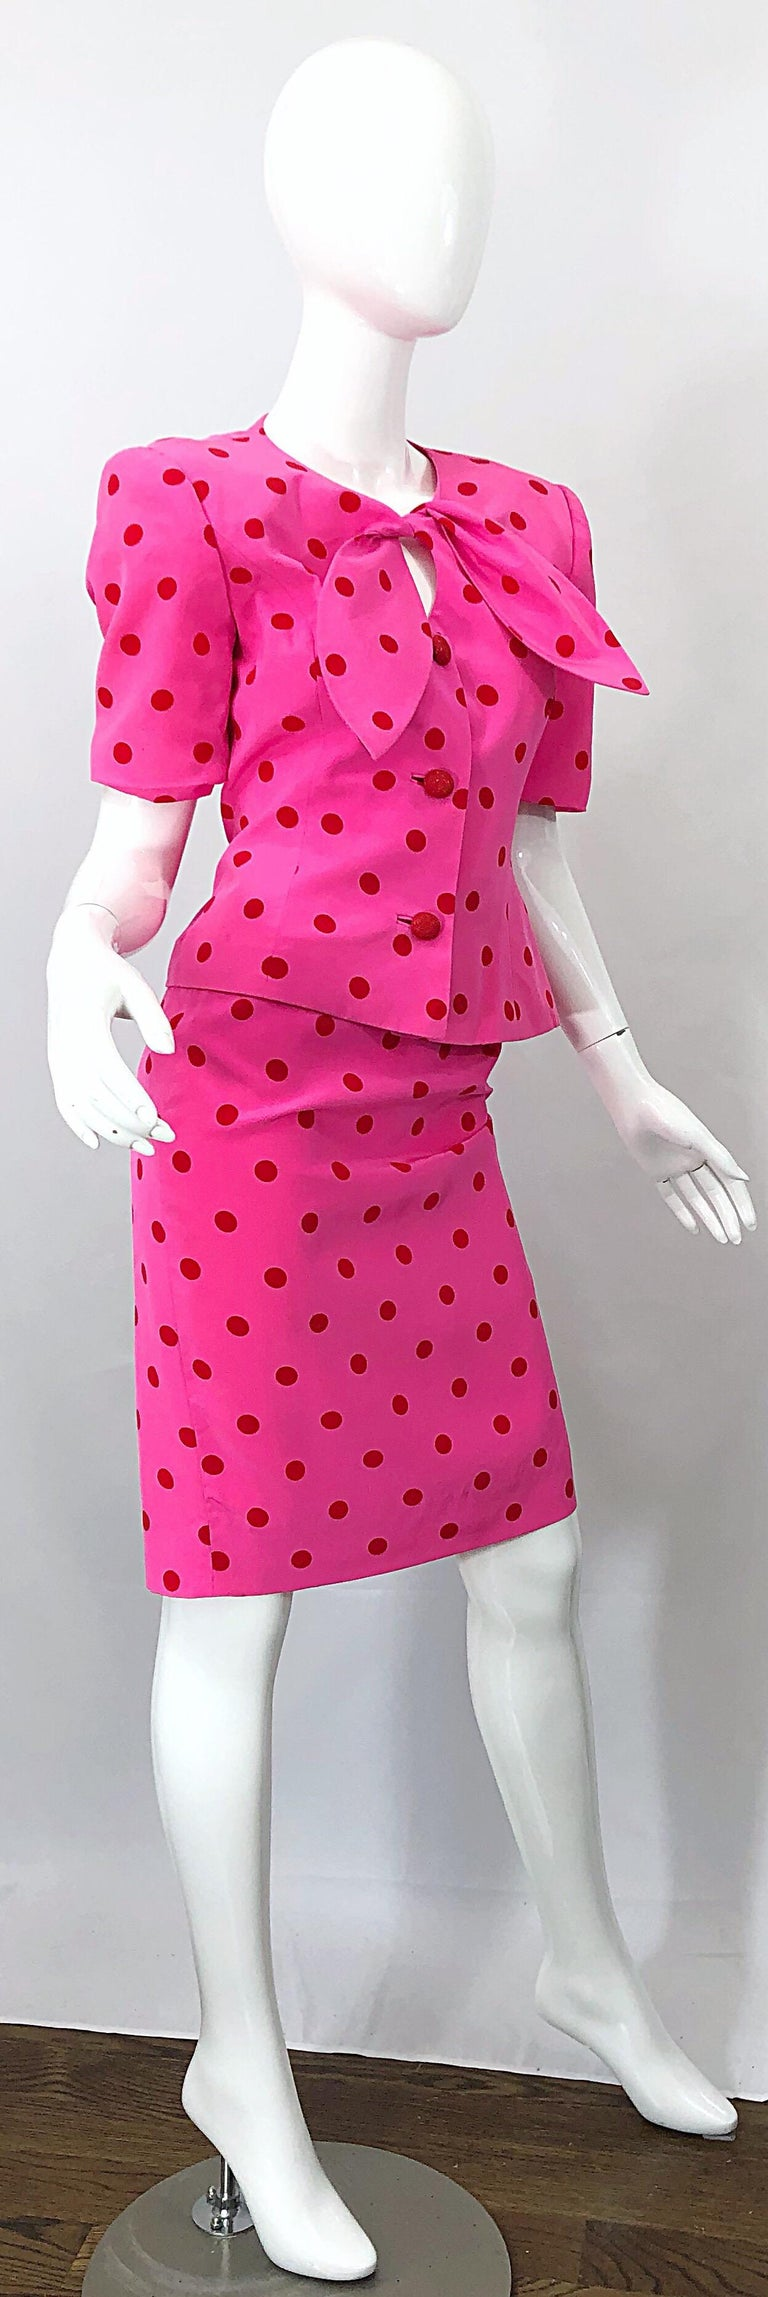 1990s David Hayes for Saks 5th Avenue Hot Pink Red Polka Dot Vintage Skirt Suit For Sale 7